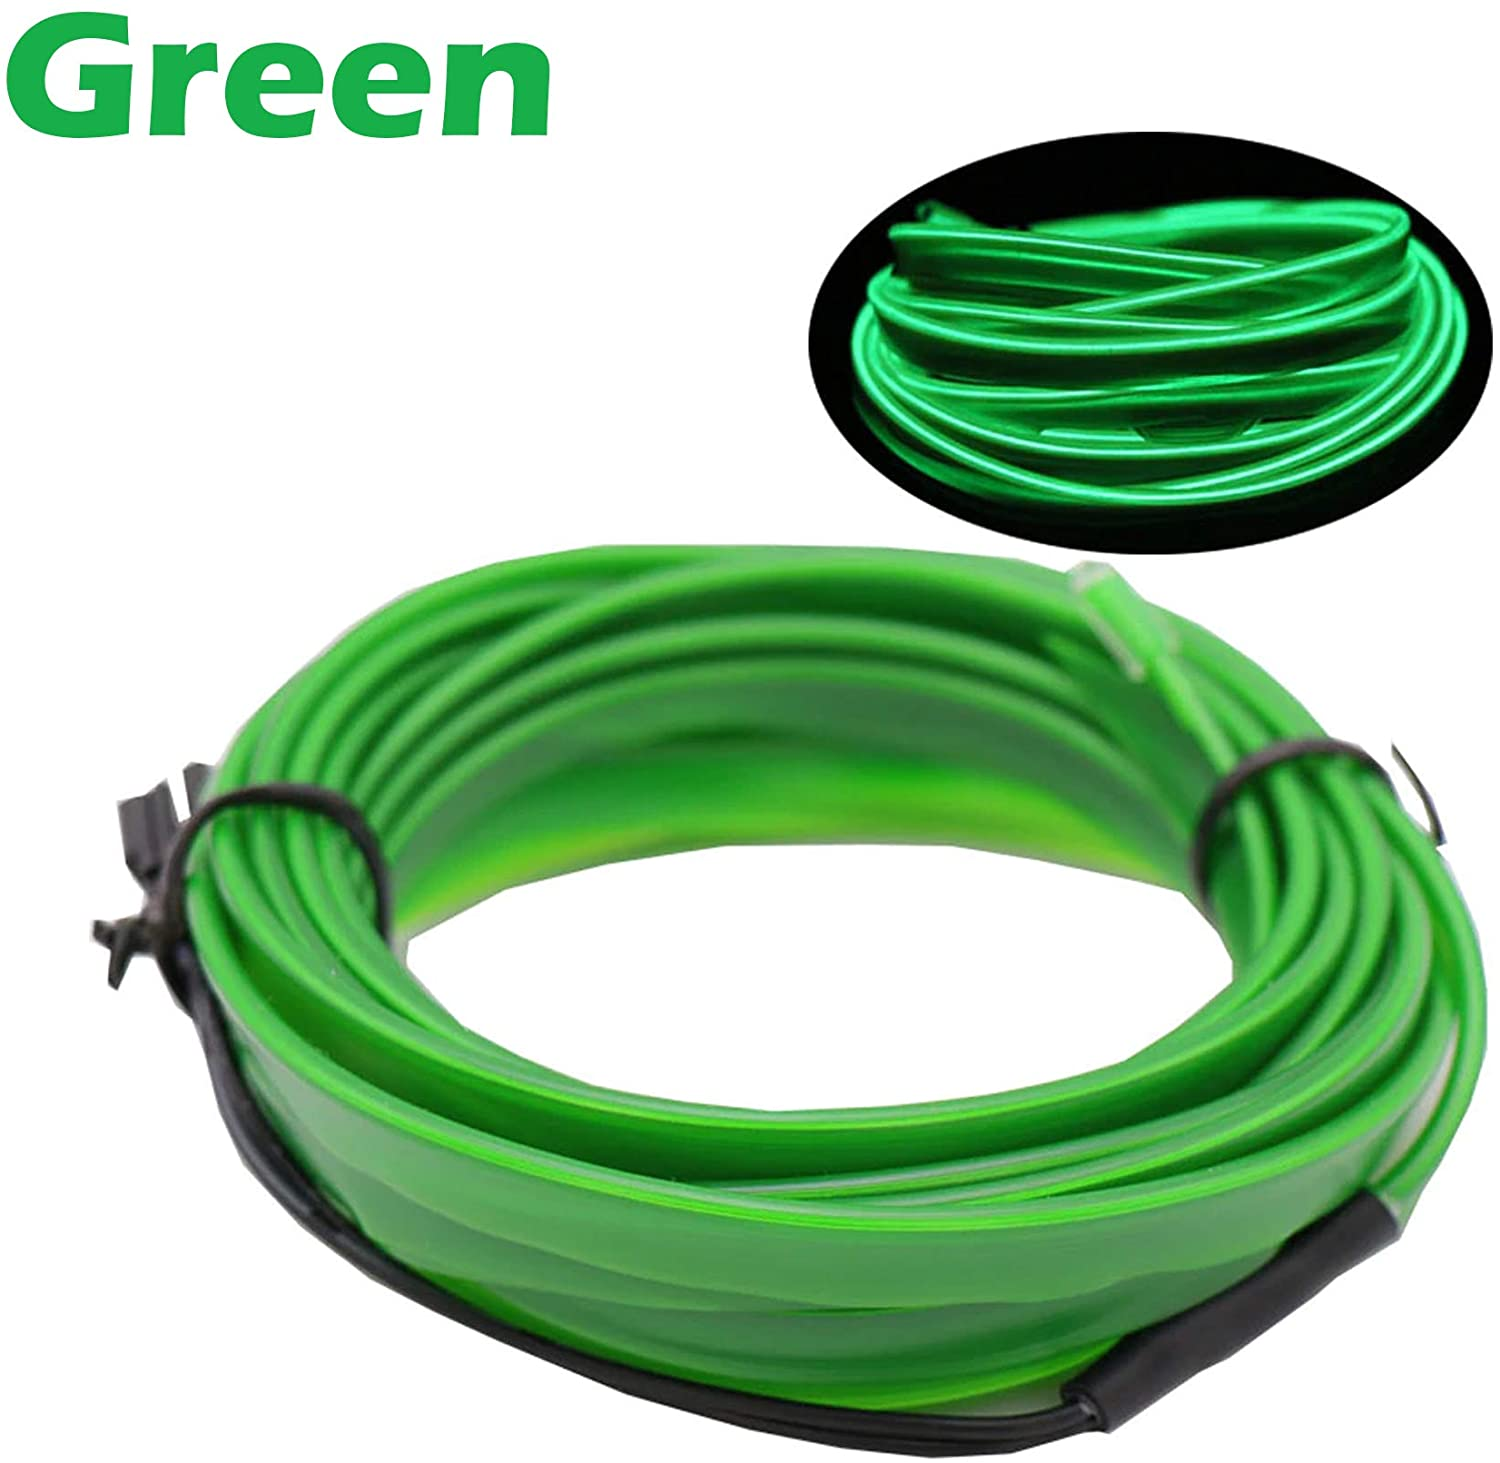 1-Pack 10m/32.8ft Green Neon LED Light Glow EL Wire - 3.2 mm Thick - EL Wire ONLY - Craft Neon Wire String Light for DIY Project Costume Accessories Cosplay